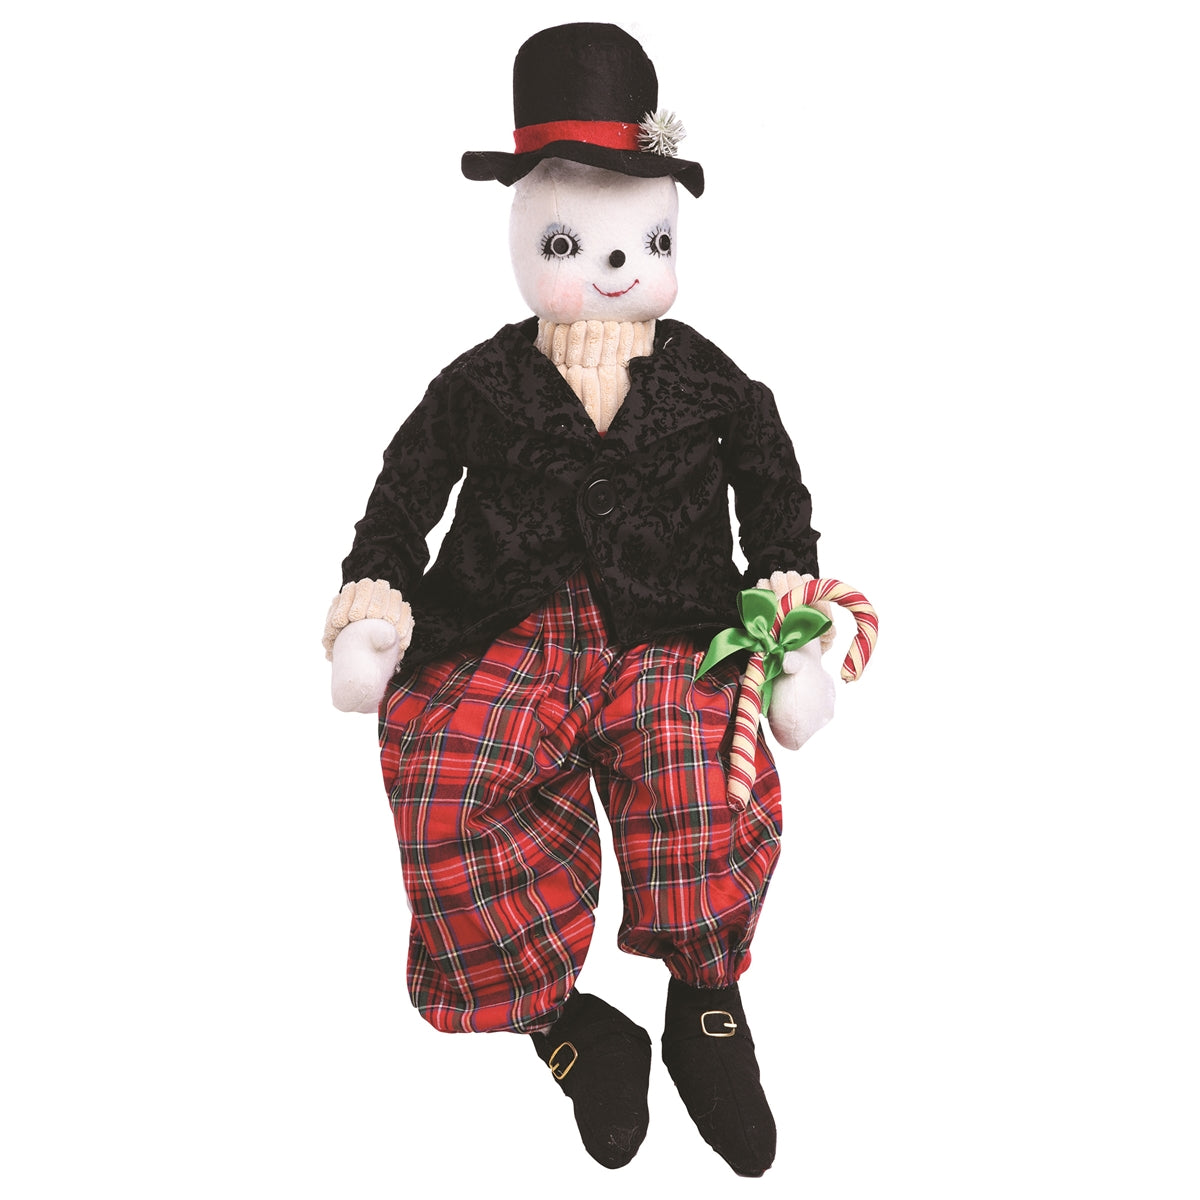 Joe Spencer Byron Snowman in Top Hat - Cloth Snowmen Dolls